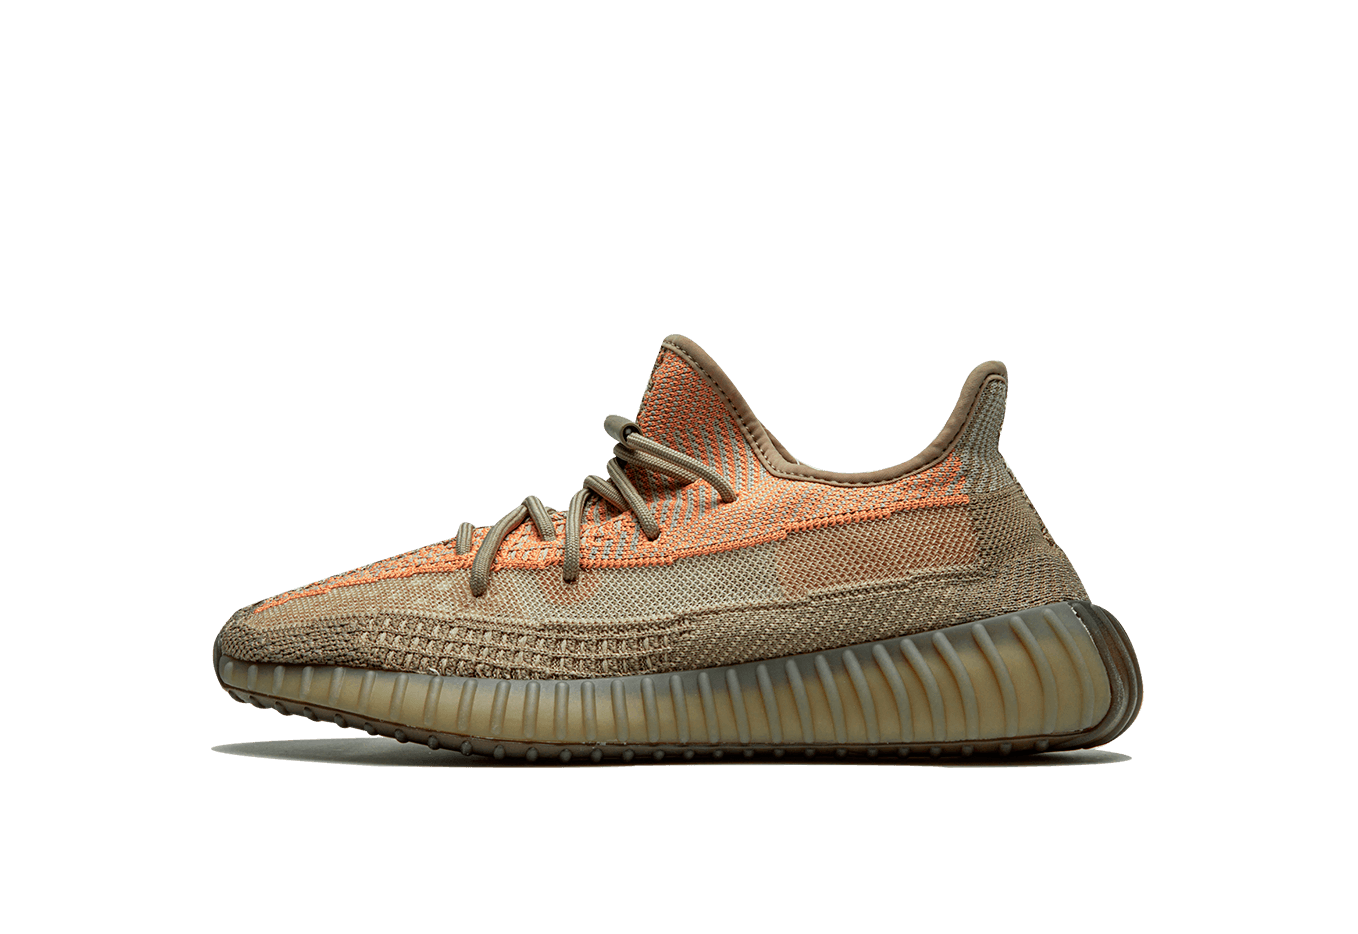 Buy New Adidas Yeezy Boost 350 V2 Sand Taupe